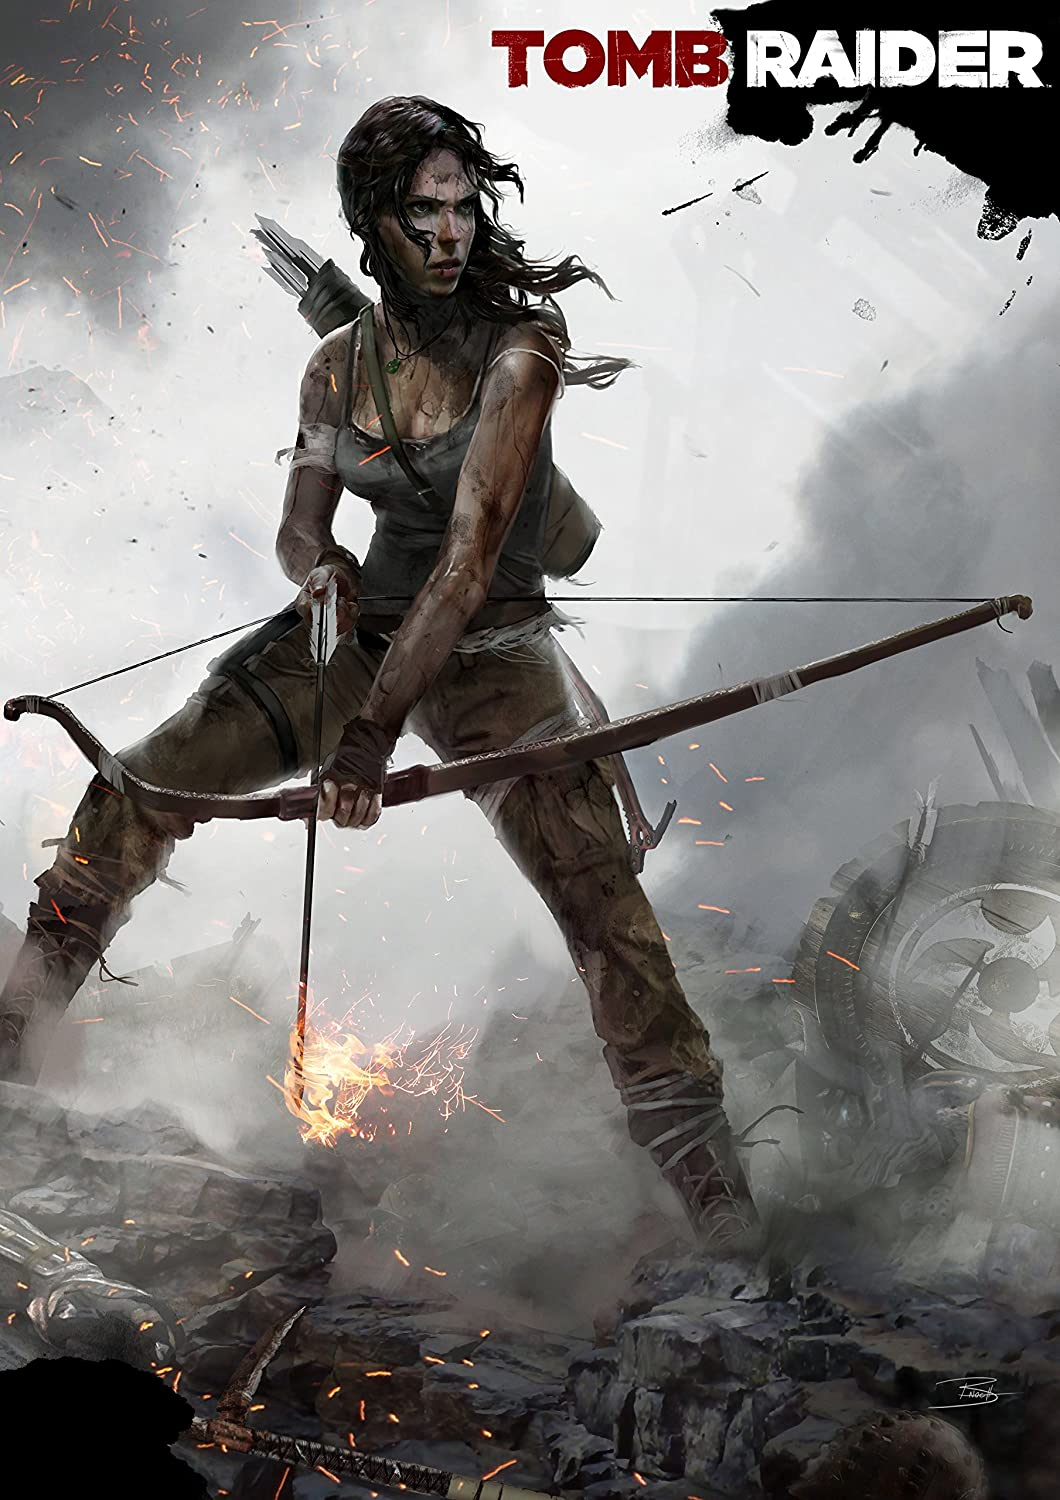 Tomb Raider Poster Amazoncouk PC Video Games